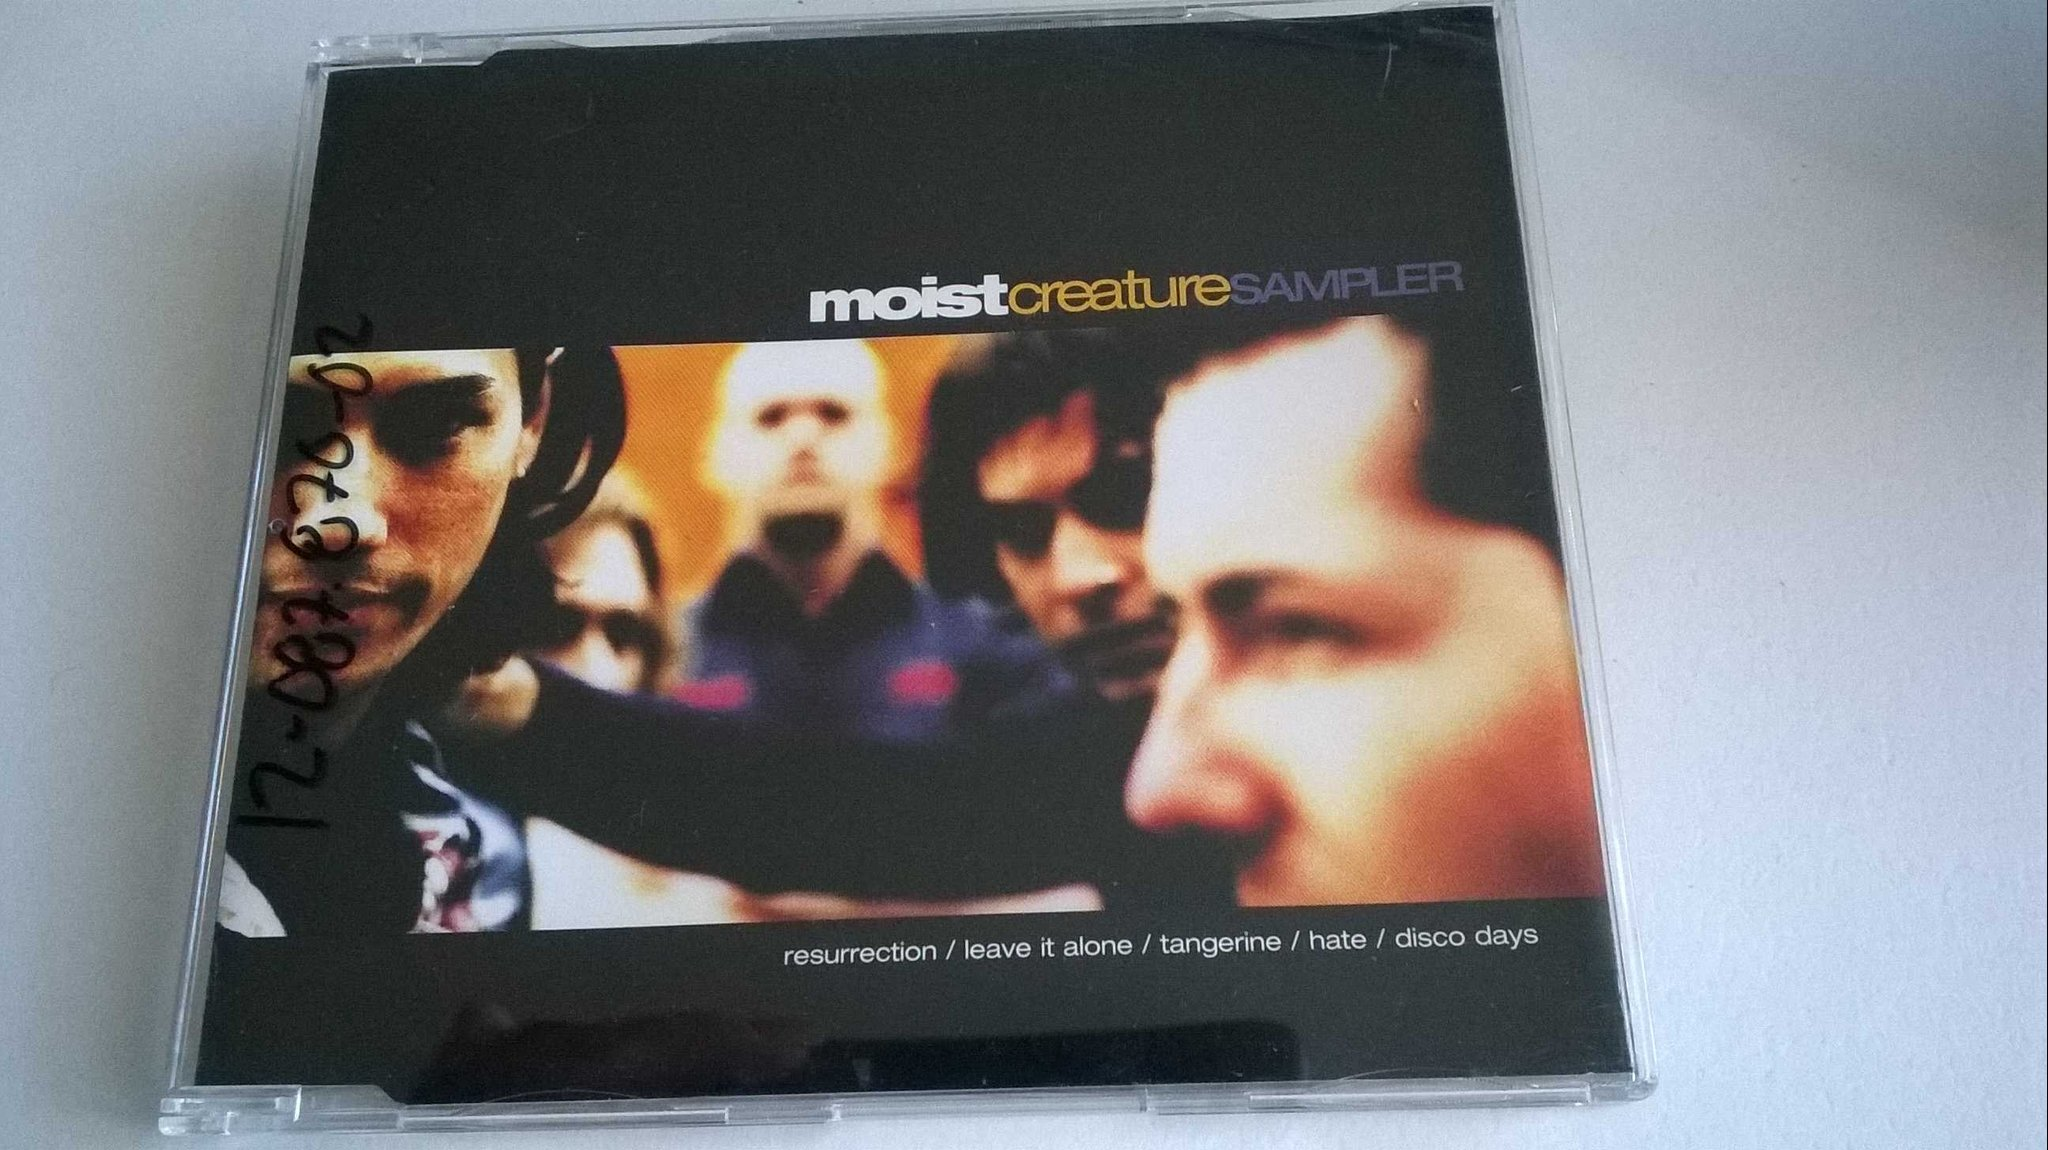 Moist ?- Creature, CD, Single